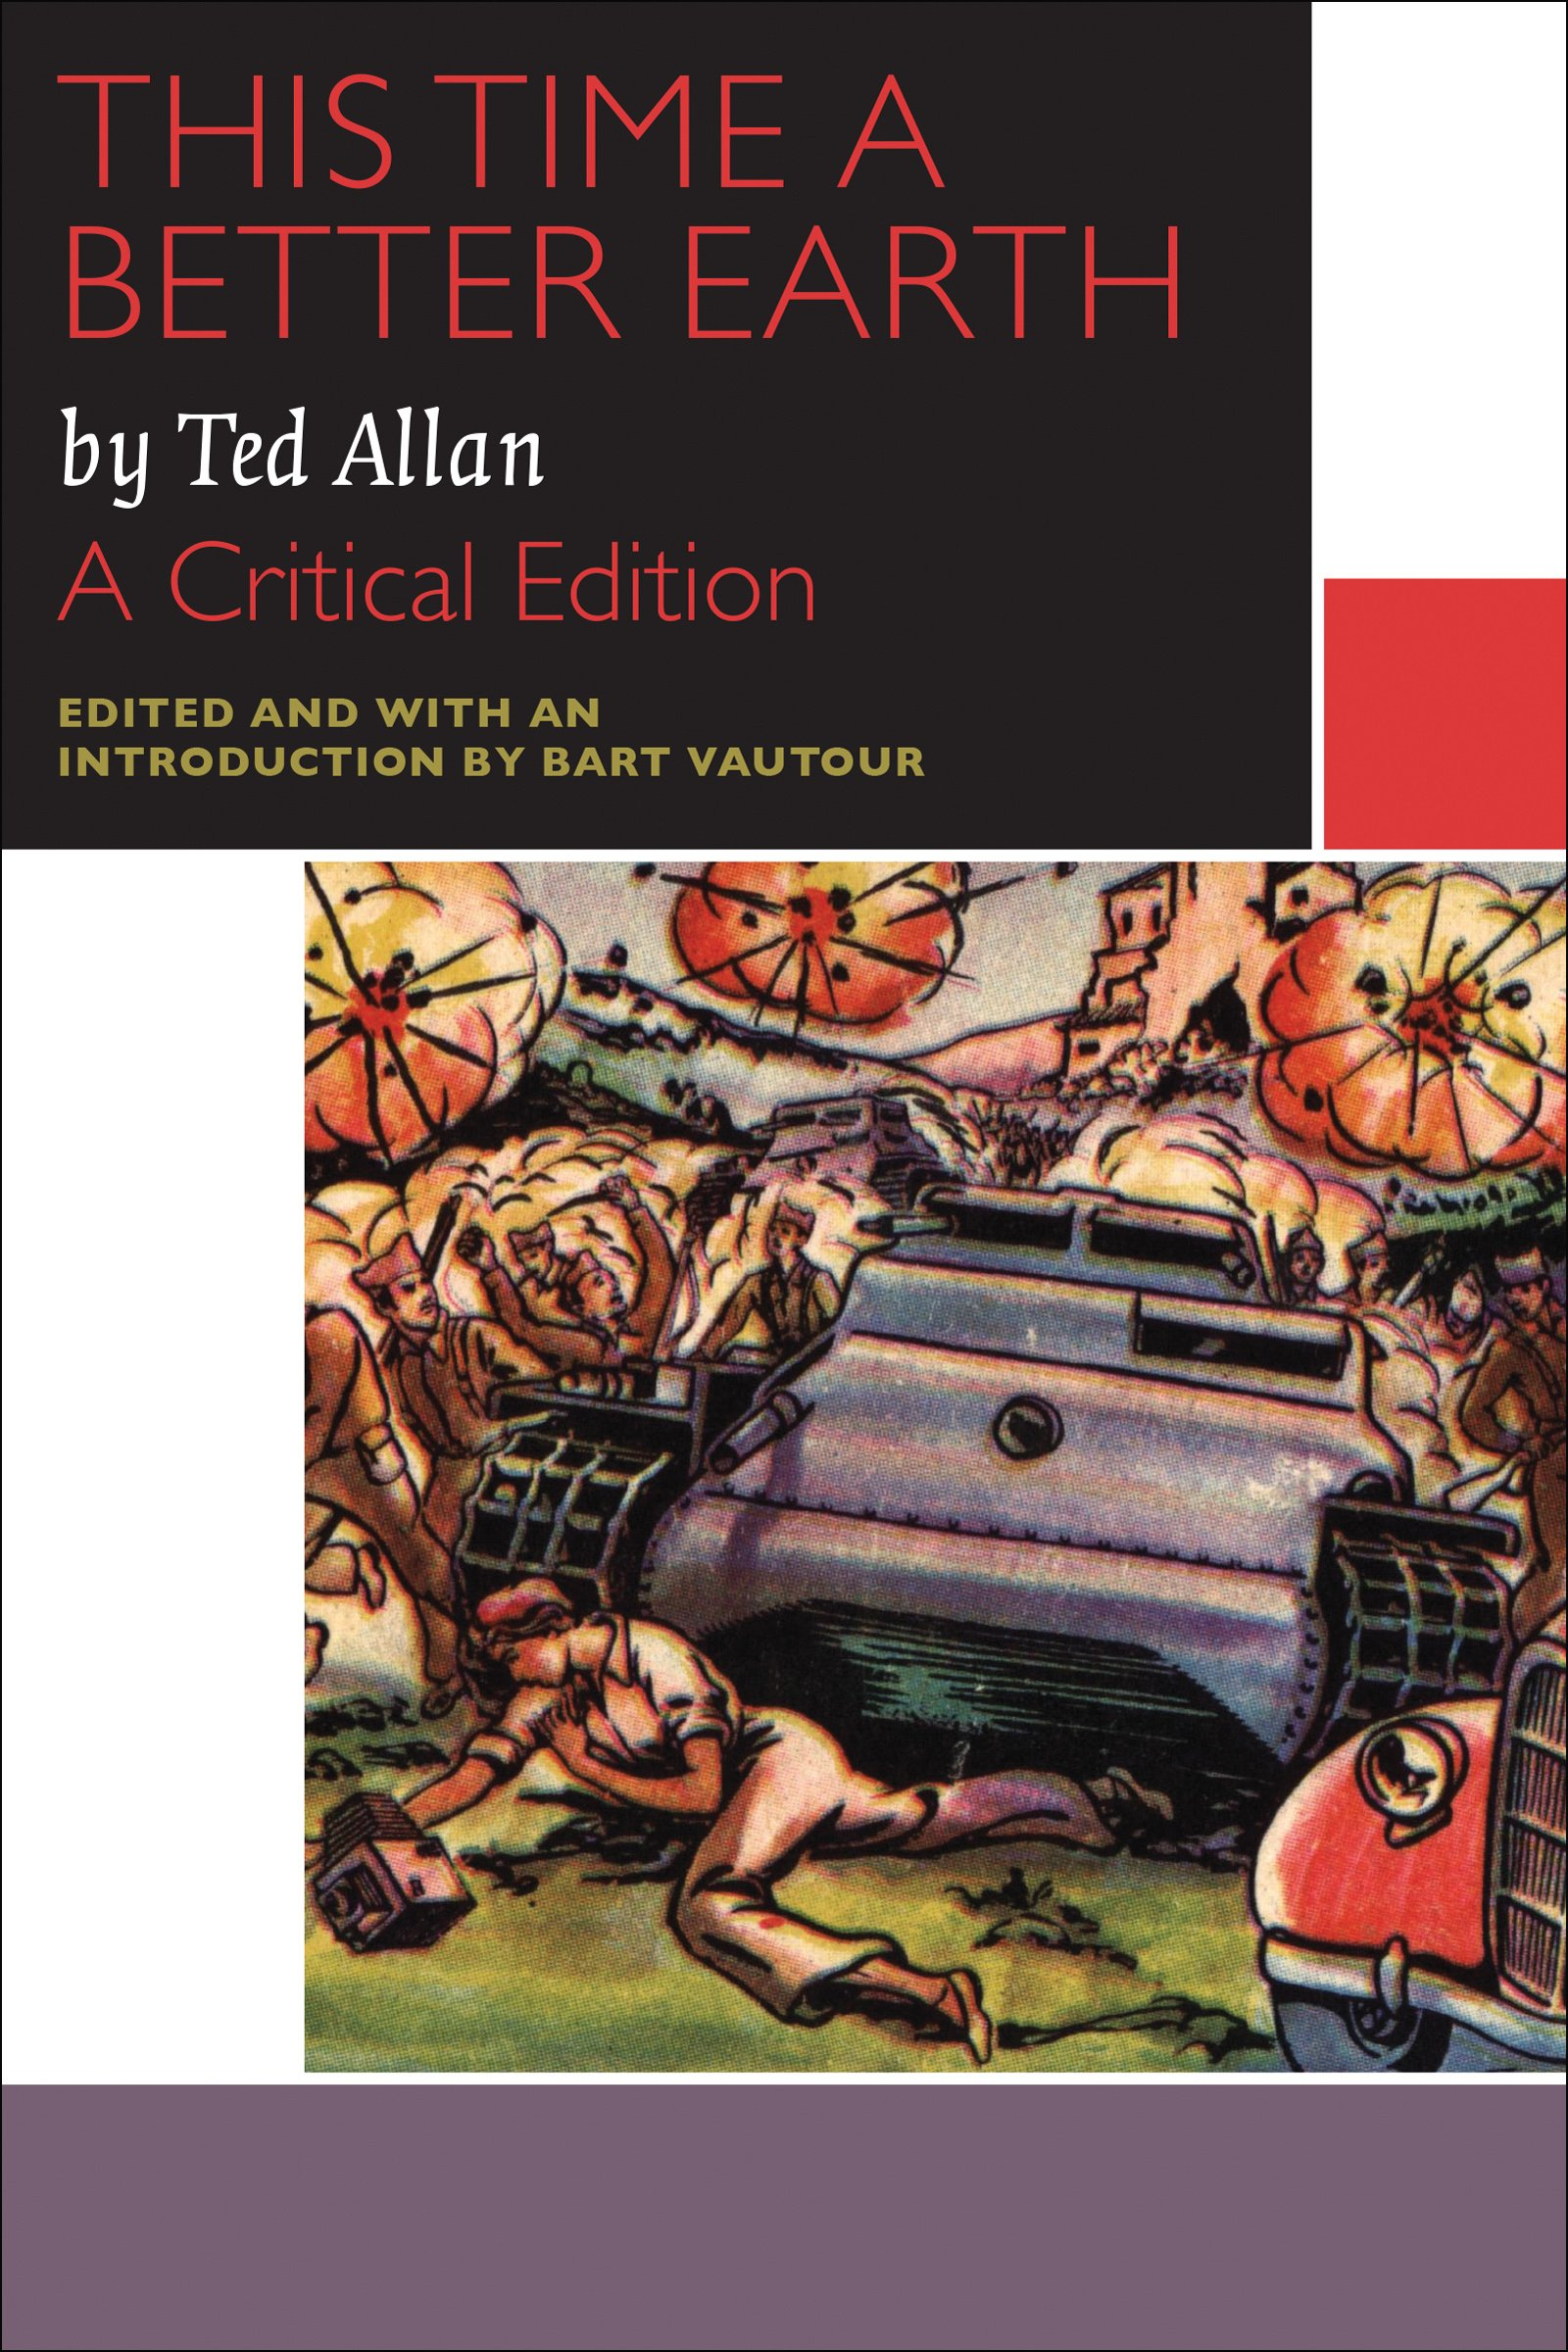 This Time a Better Earth, by Ted Allan: A Critical Edition: Allan, Ted,  Vautour, Bart: 9780776621630: Books - Amazon.ca